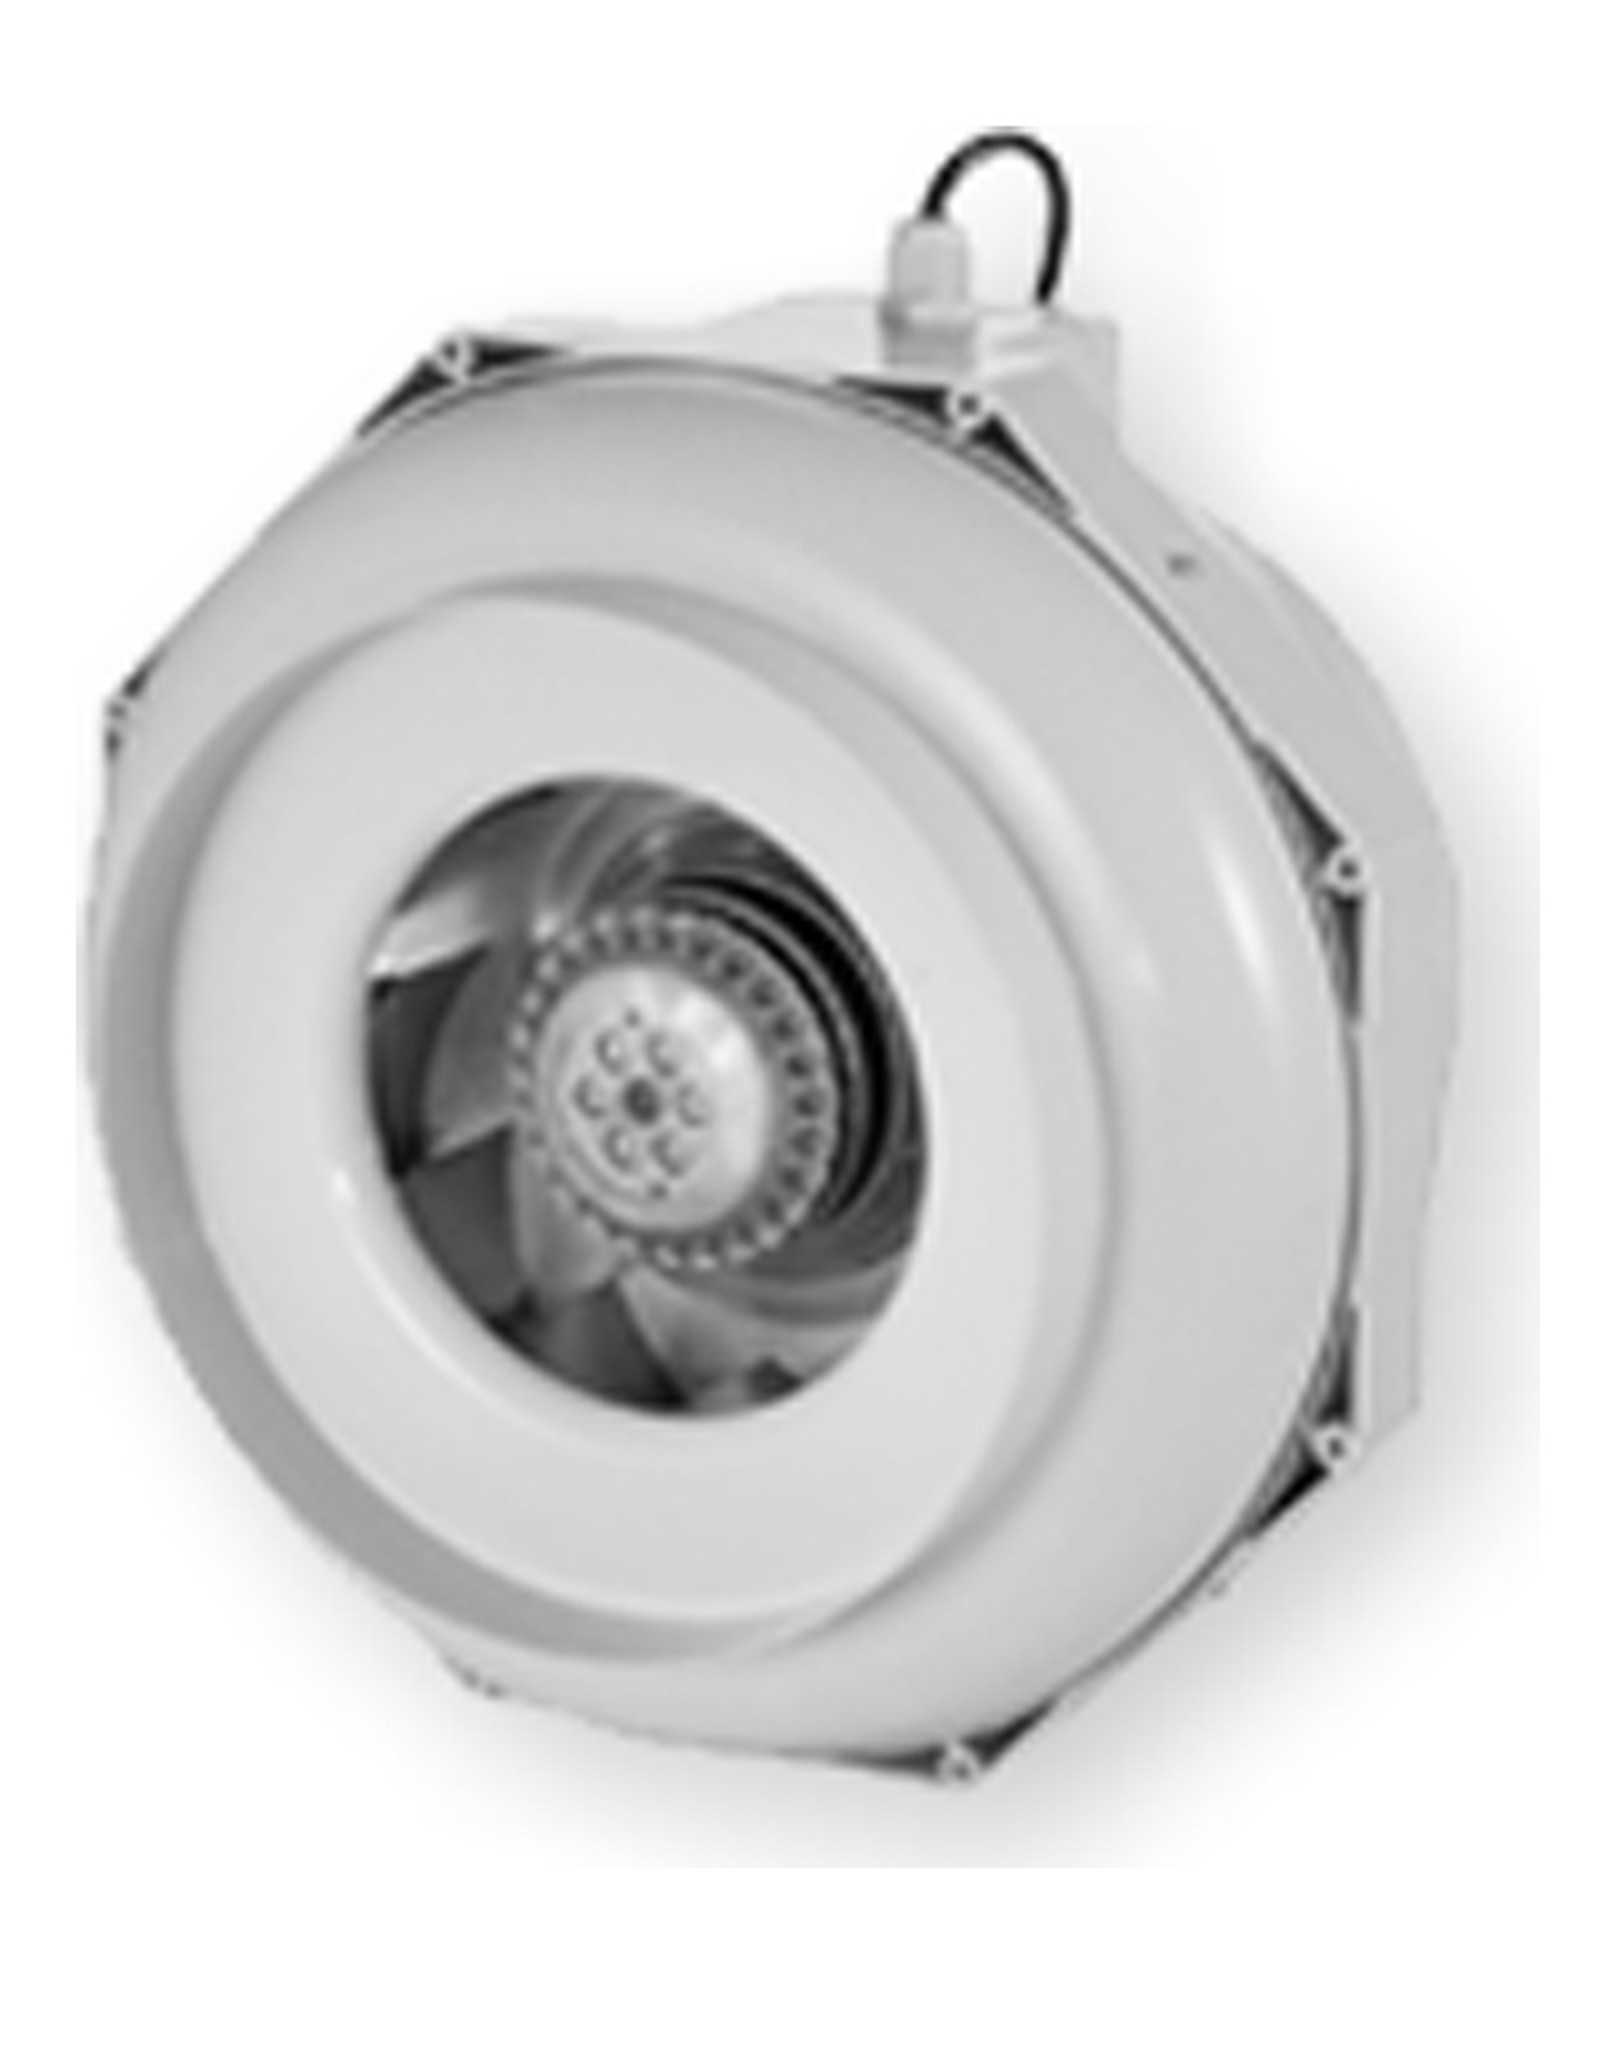 CAN CAN FAN RKW 200